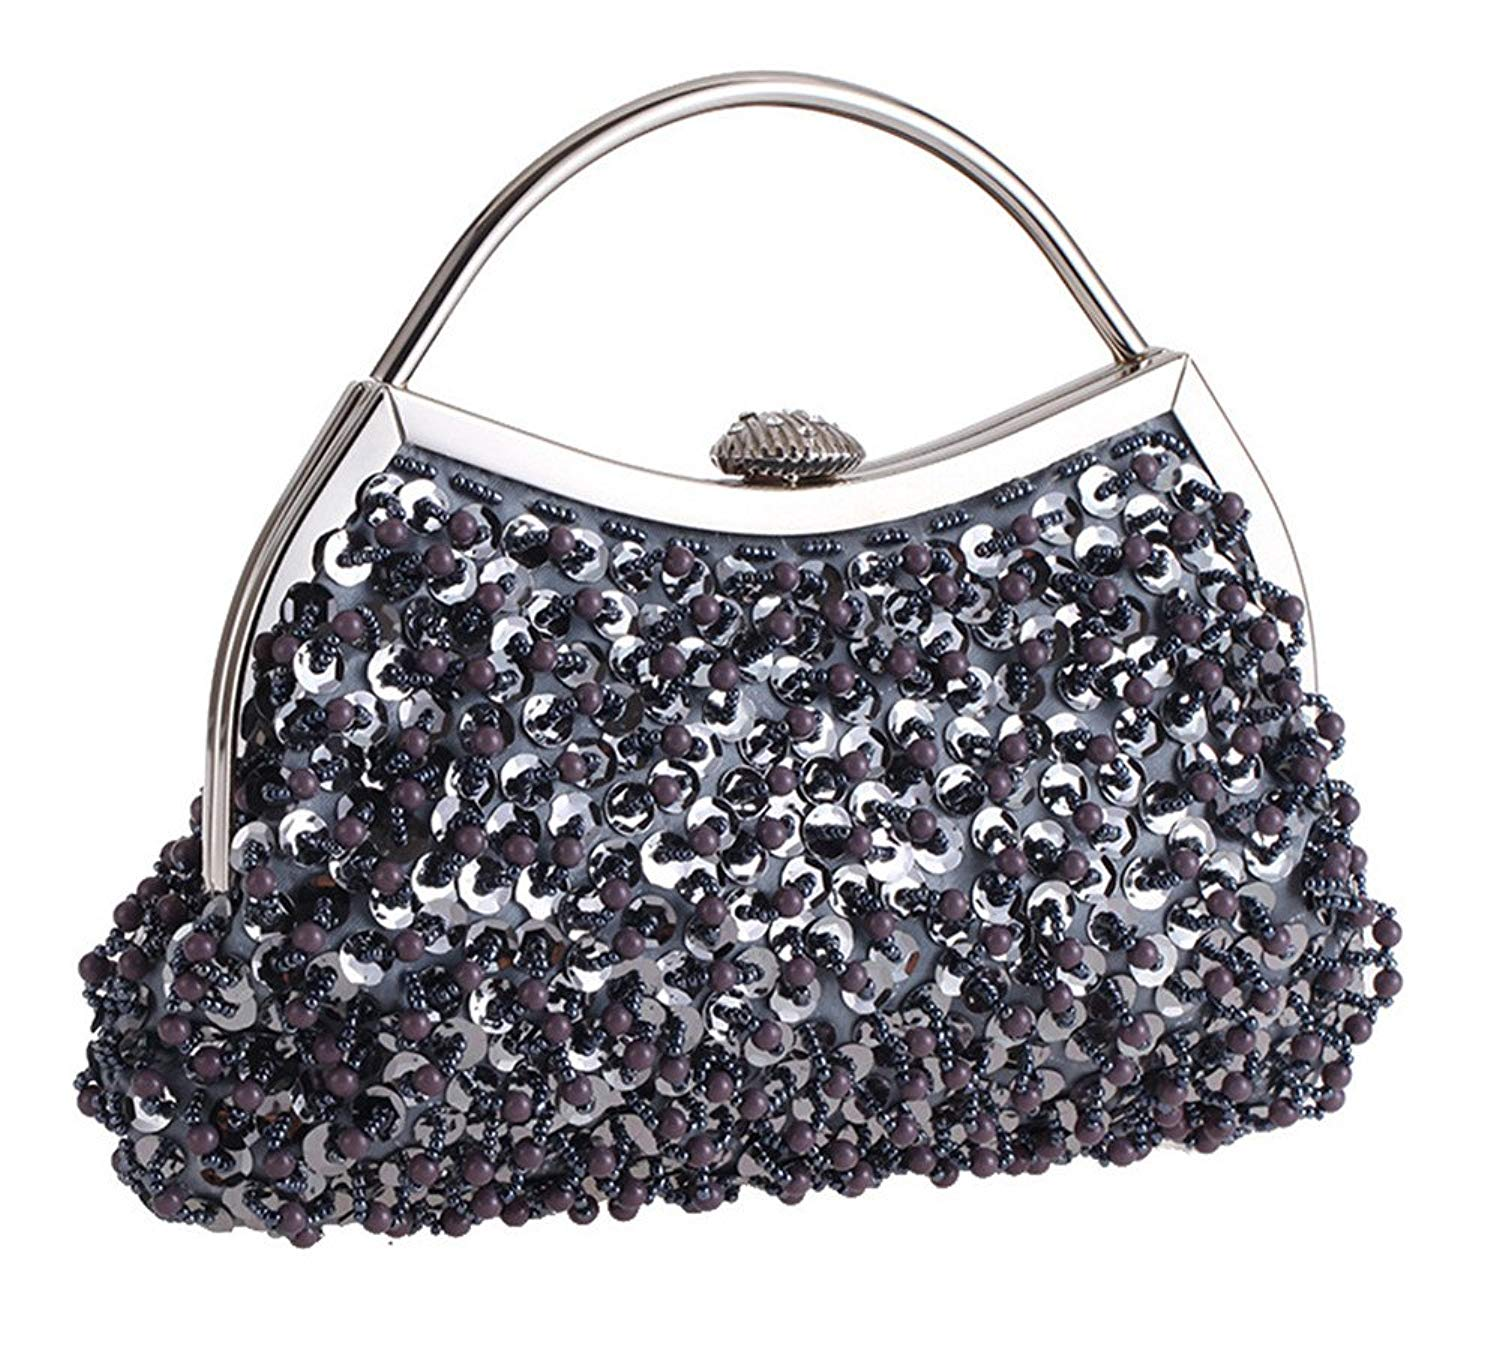 Sparkly Jewels Beaded Evening Clutch Bag Metal Top-handle Formal Purse Bag whith Detachable Chain